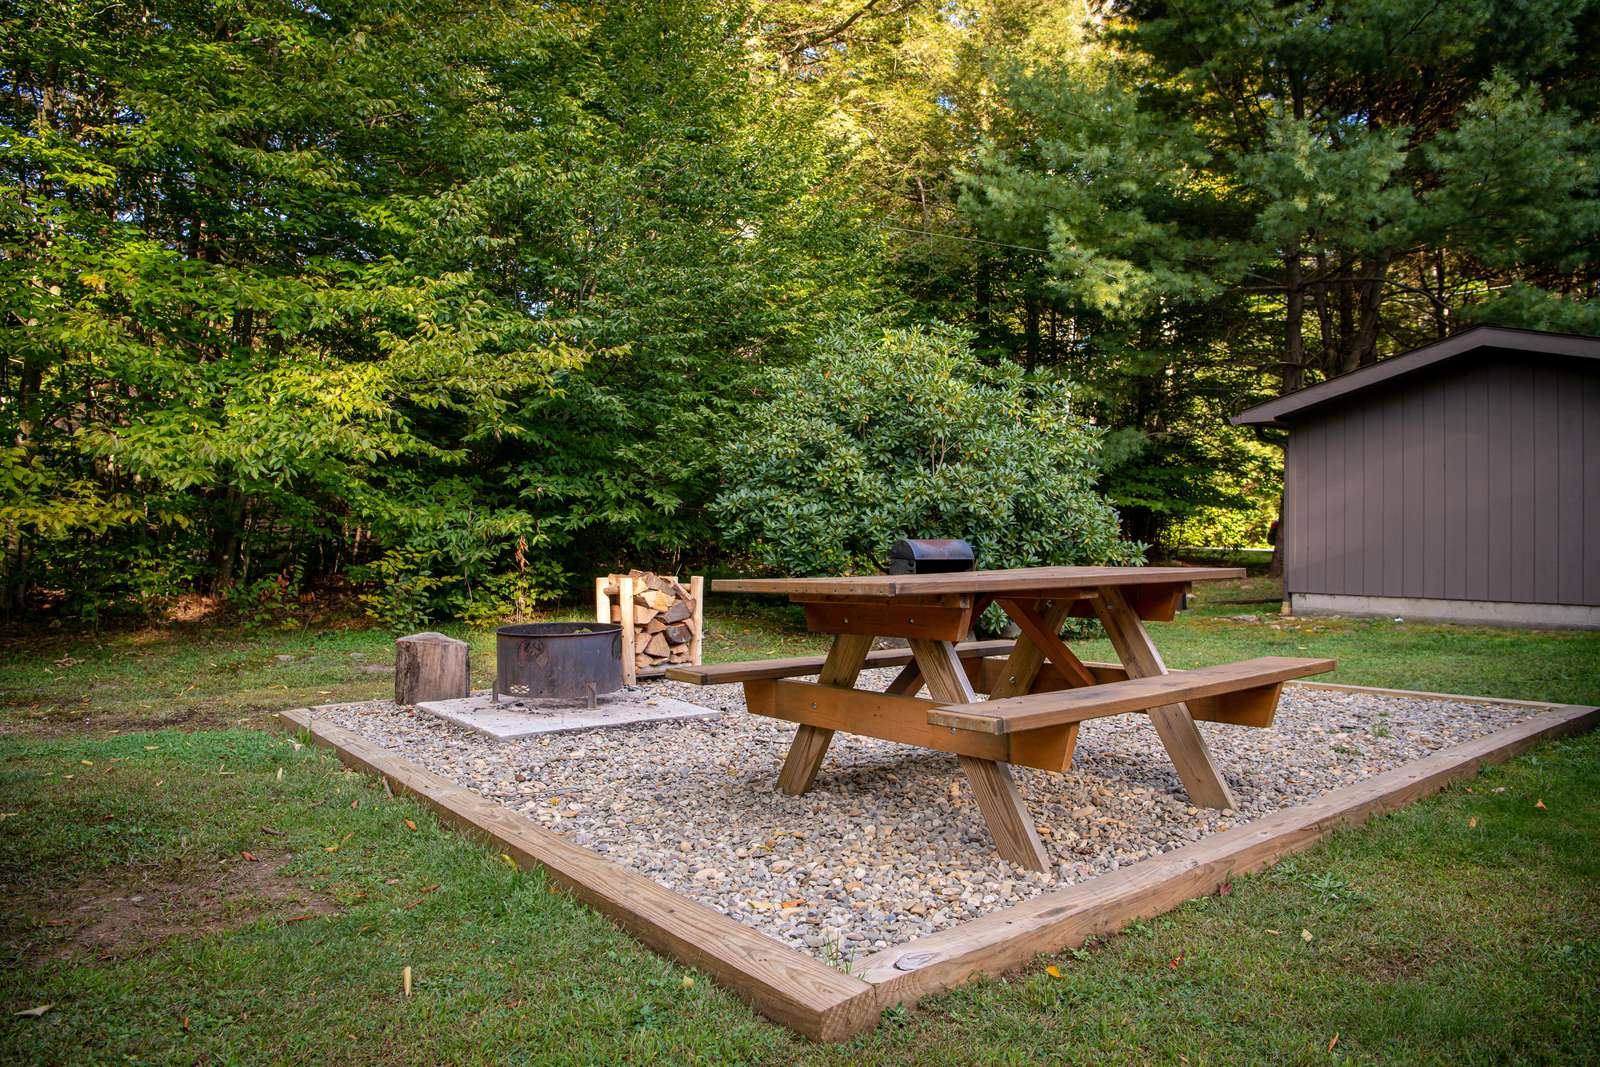 Picnic Area with Fire Pit and Charcoal Grill